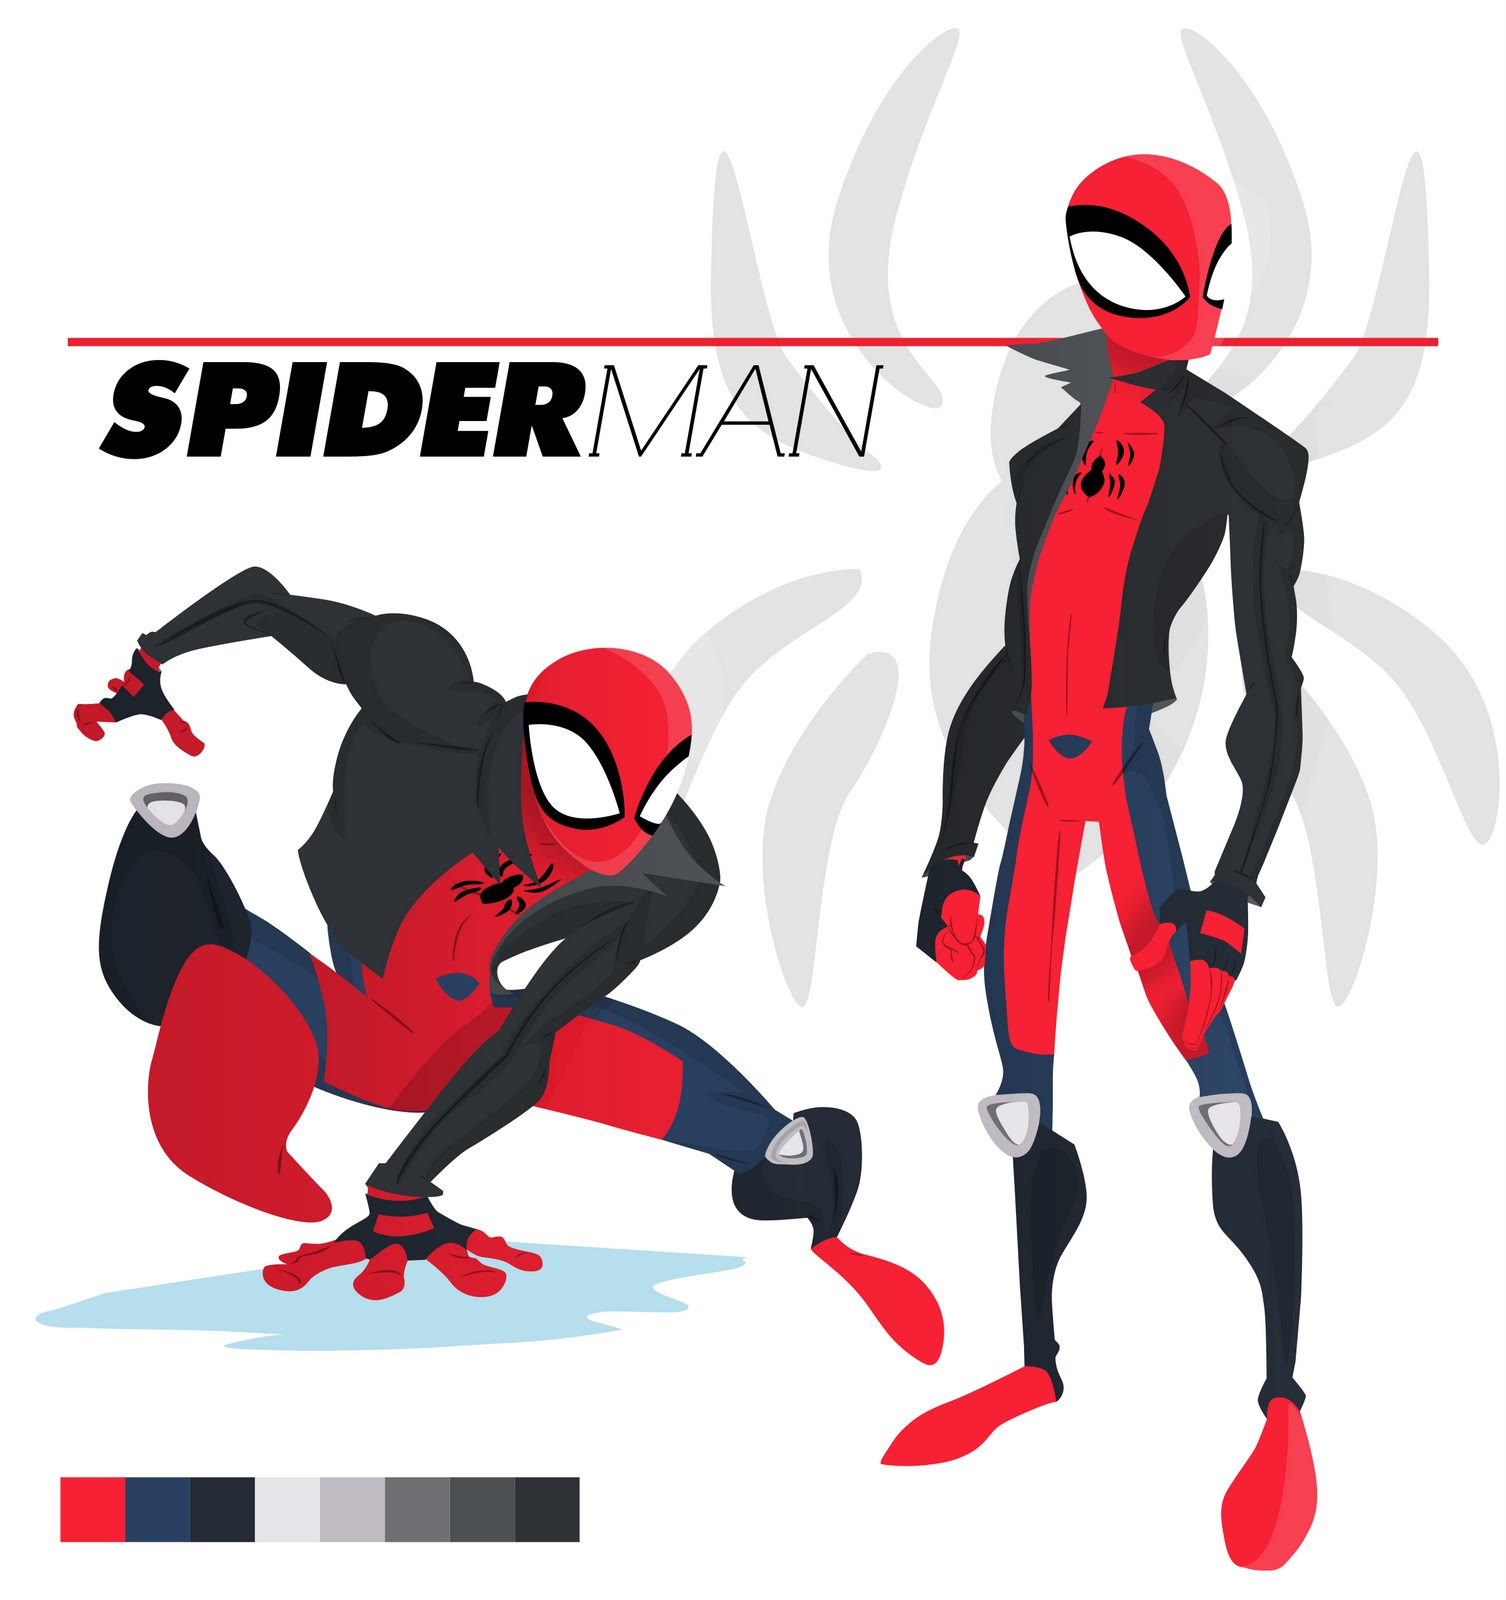 B9 Design: Spiderman Redesign Contest entry